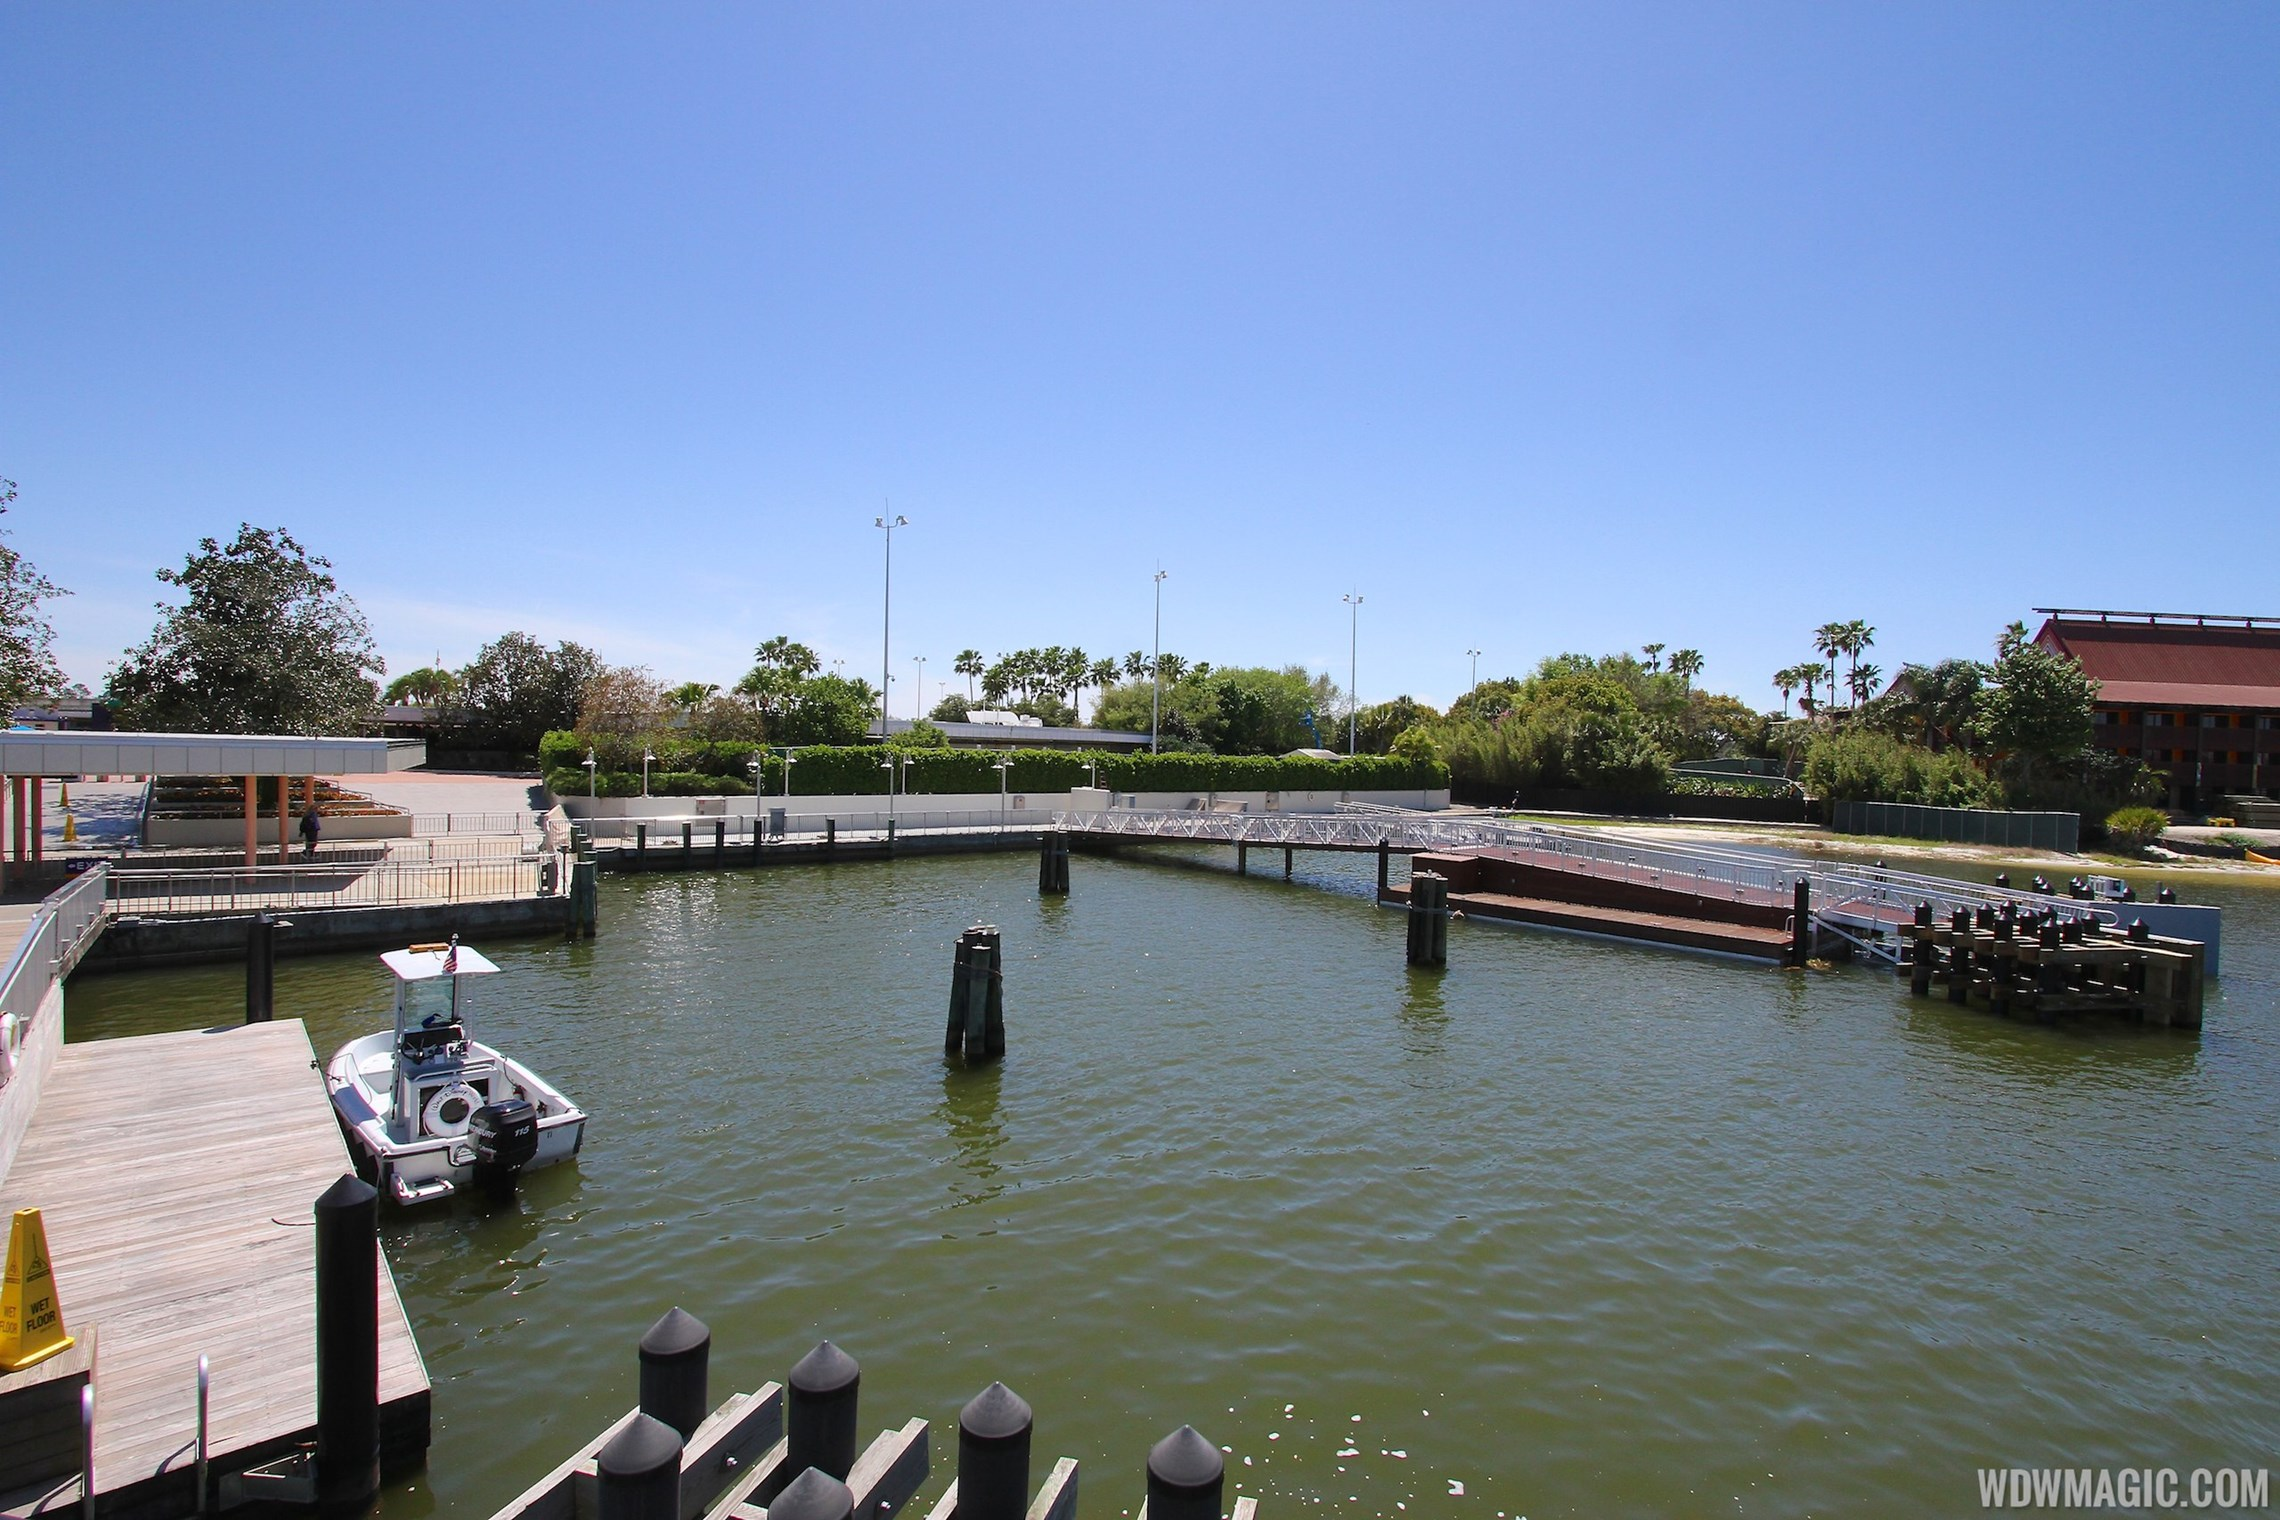 Completed second ferry boat docks at the Magic Kingdom and TTC